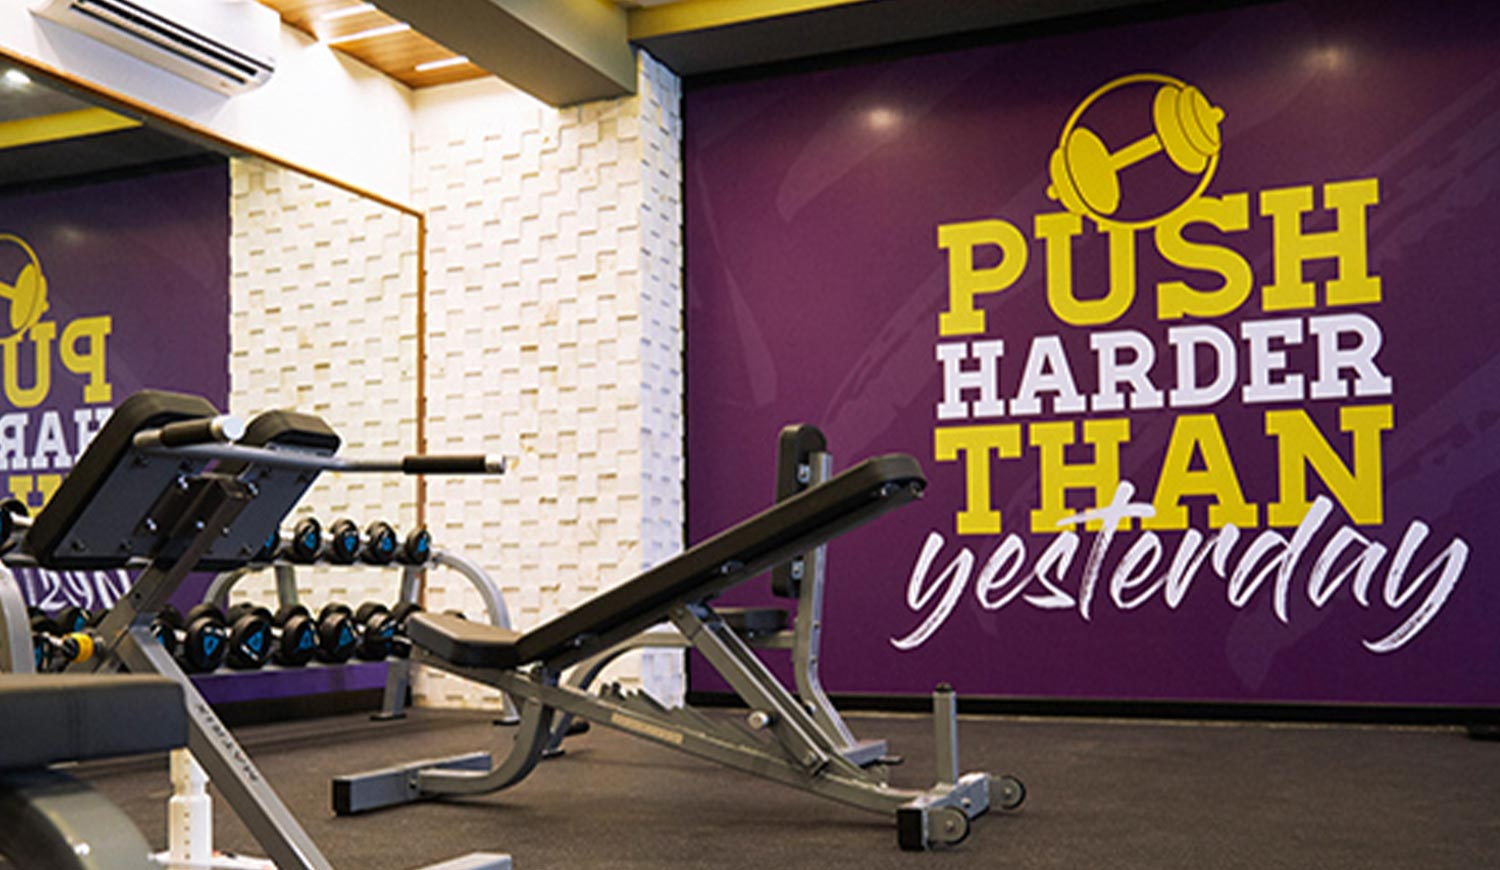 Motivational Wall Graphics for Gym